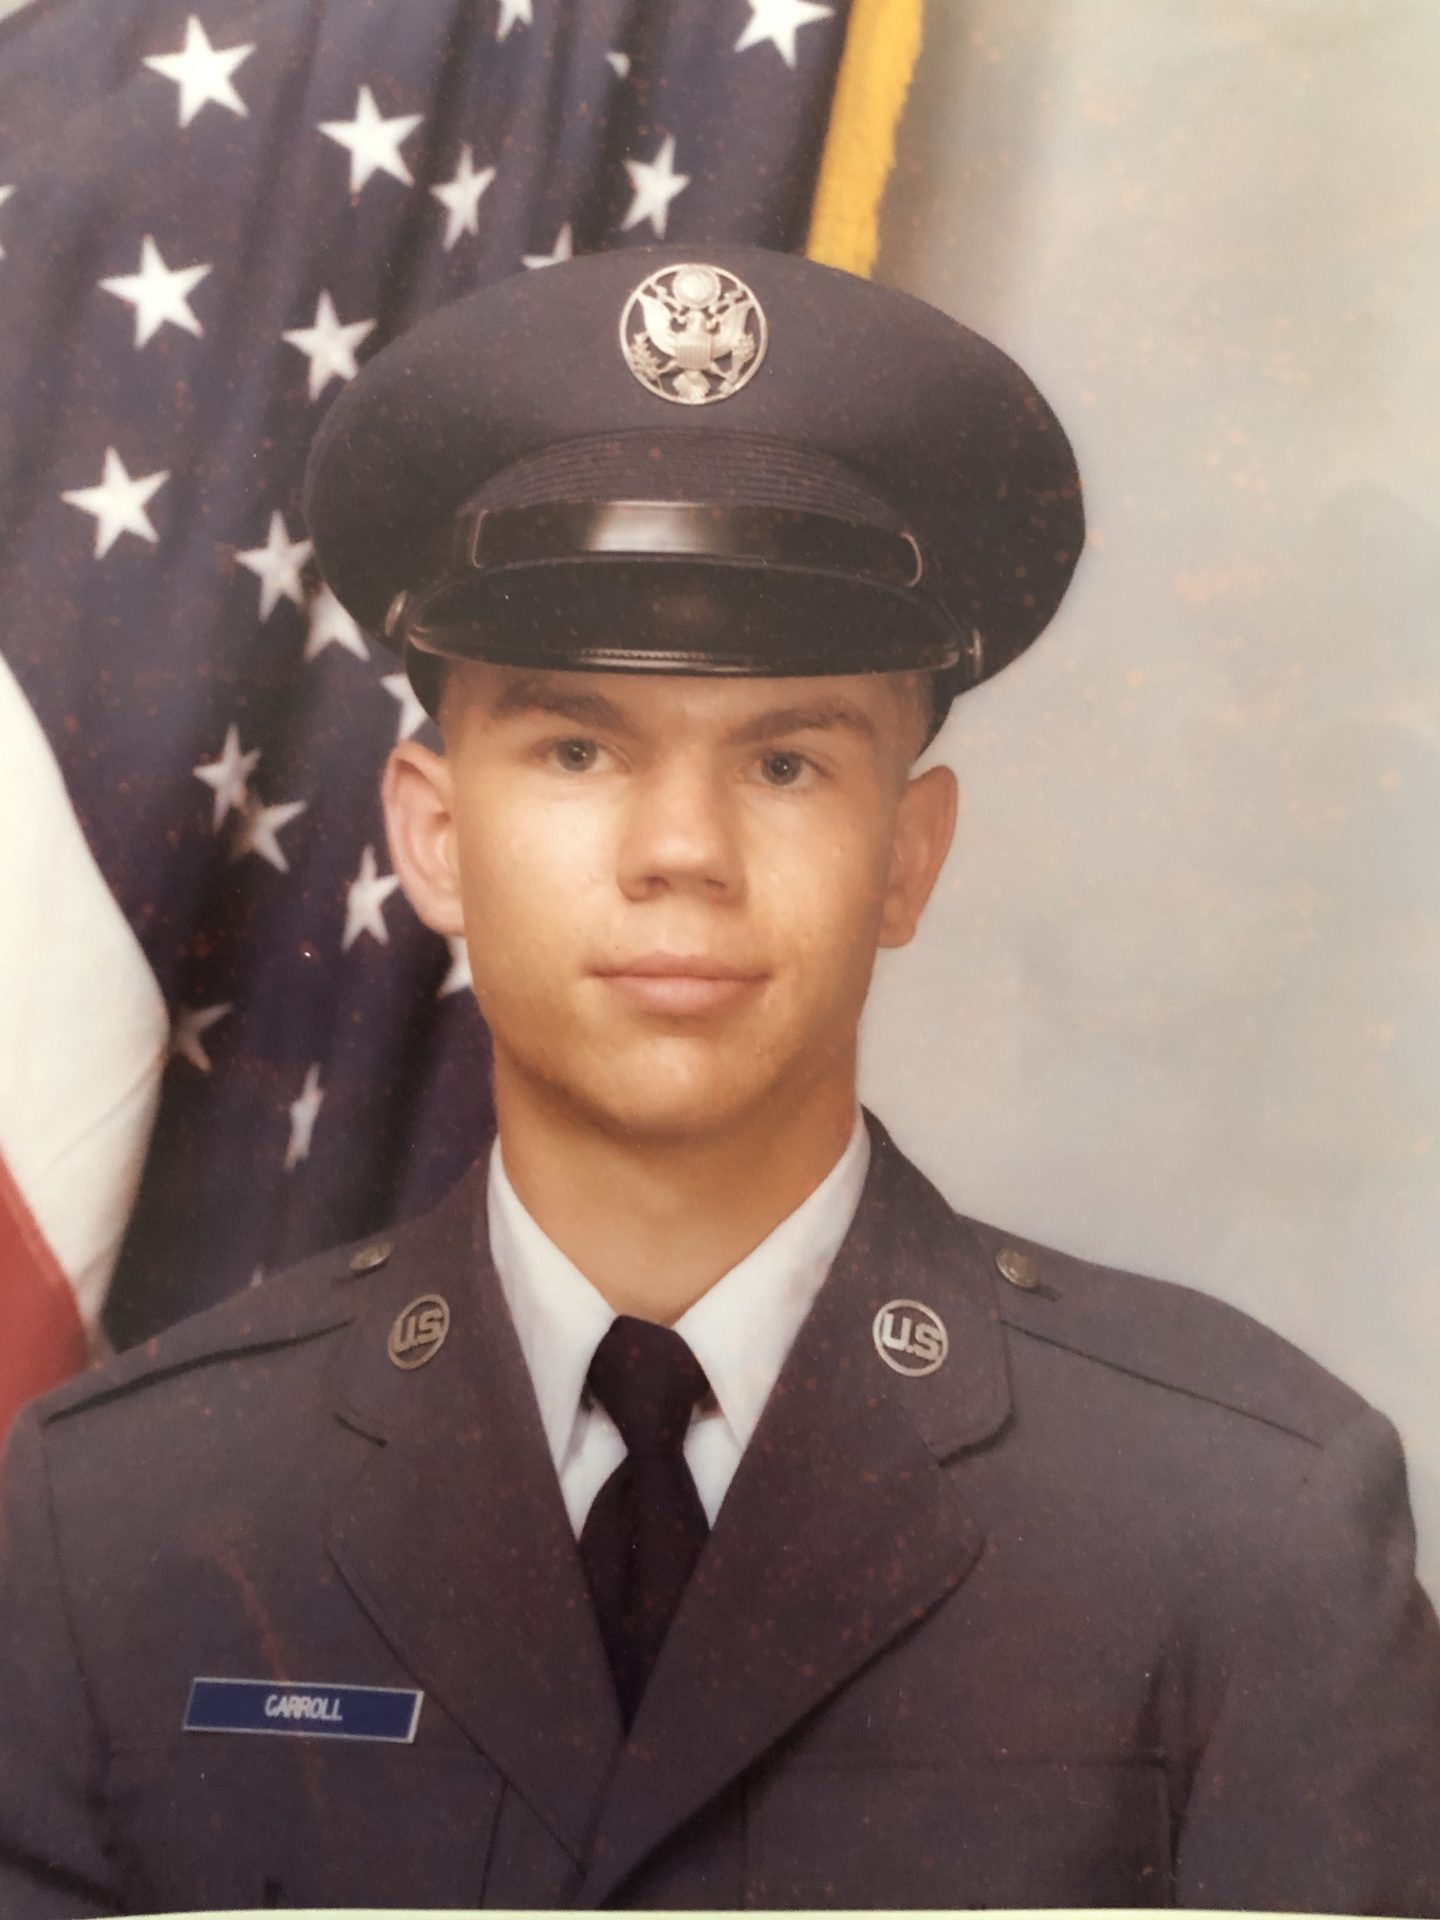 Ben Jr.'s Air Force basic training photo ( at 19 also, 1981) for comparison!